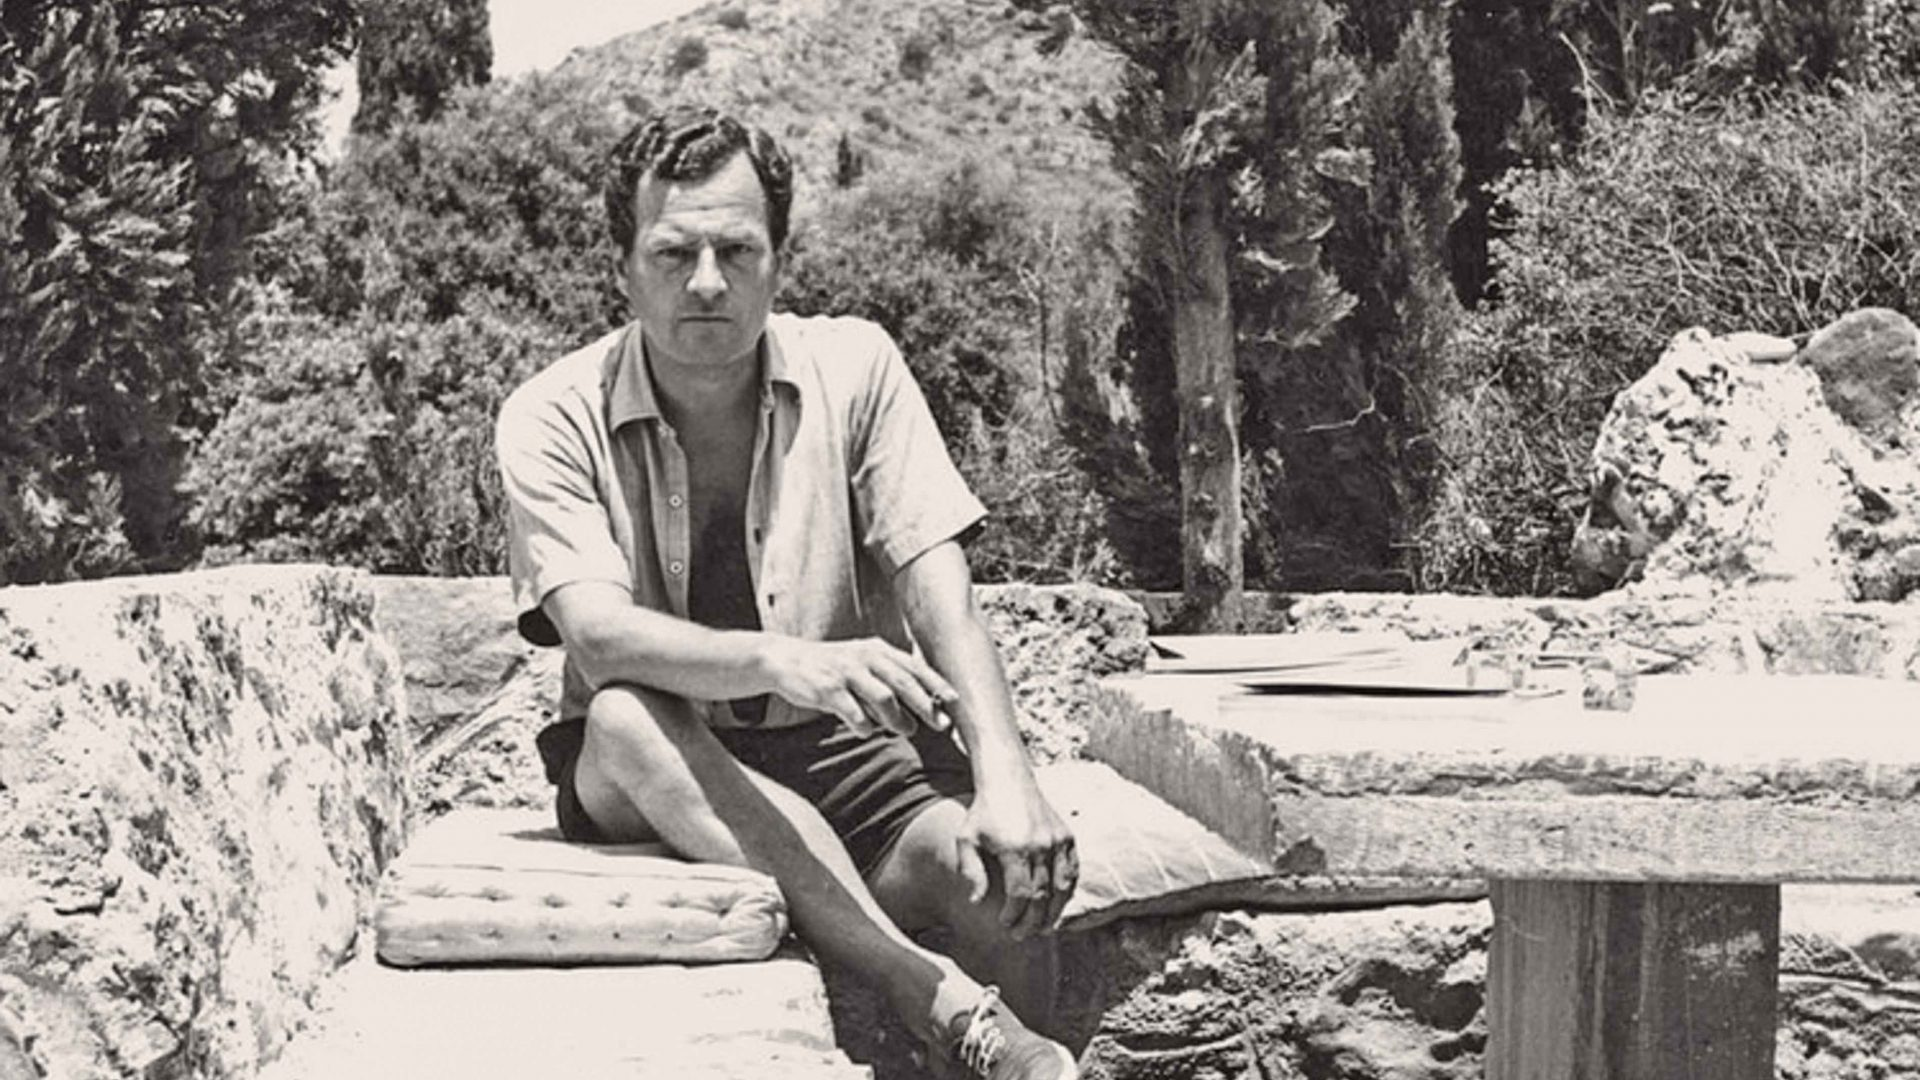 A vintage portrait of Patrick Leigh Fermor outside his home